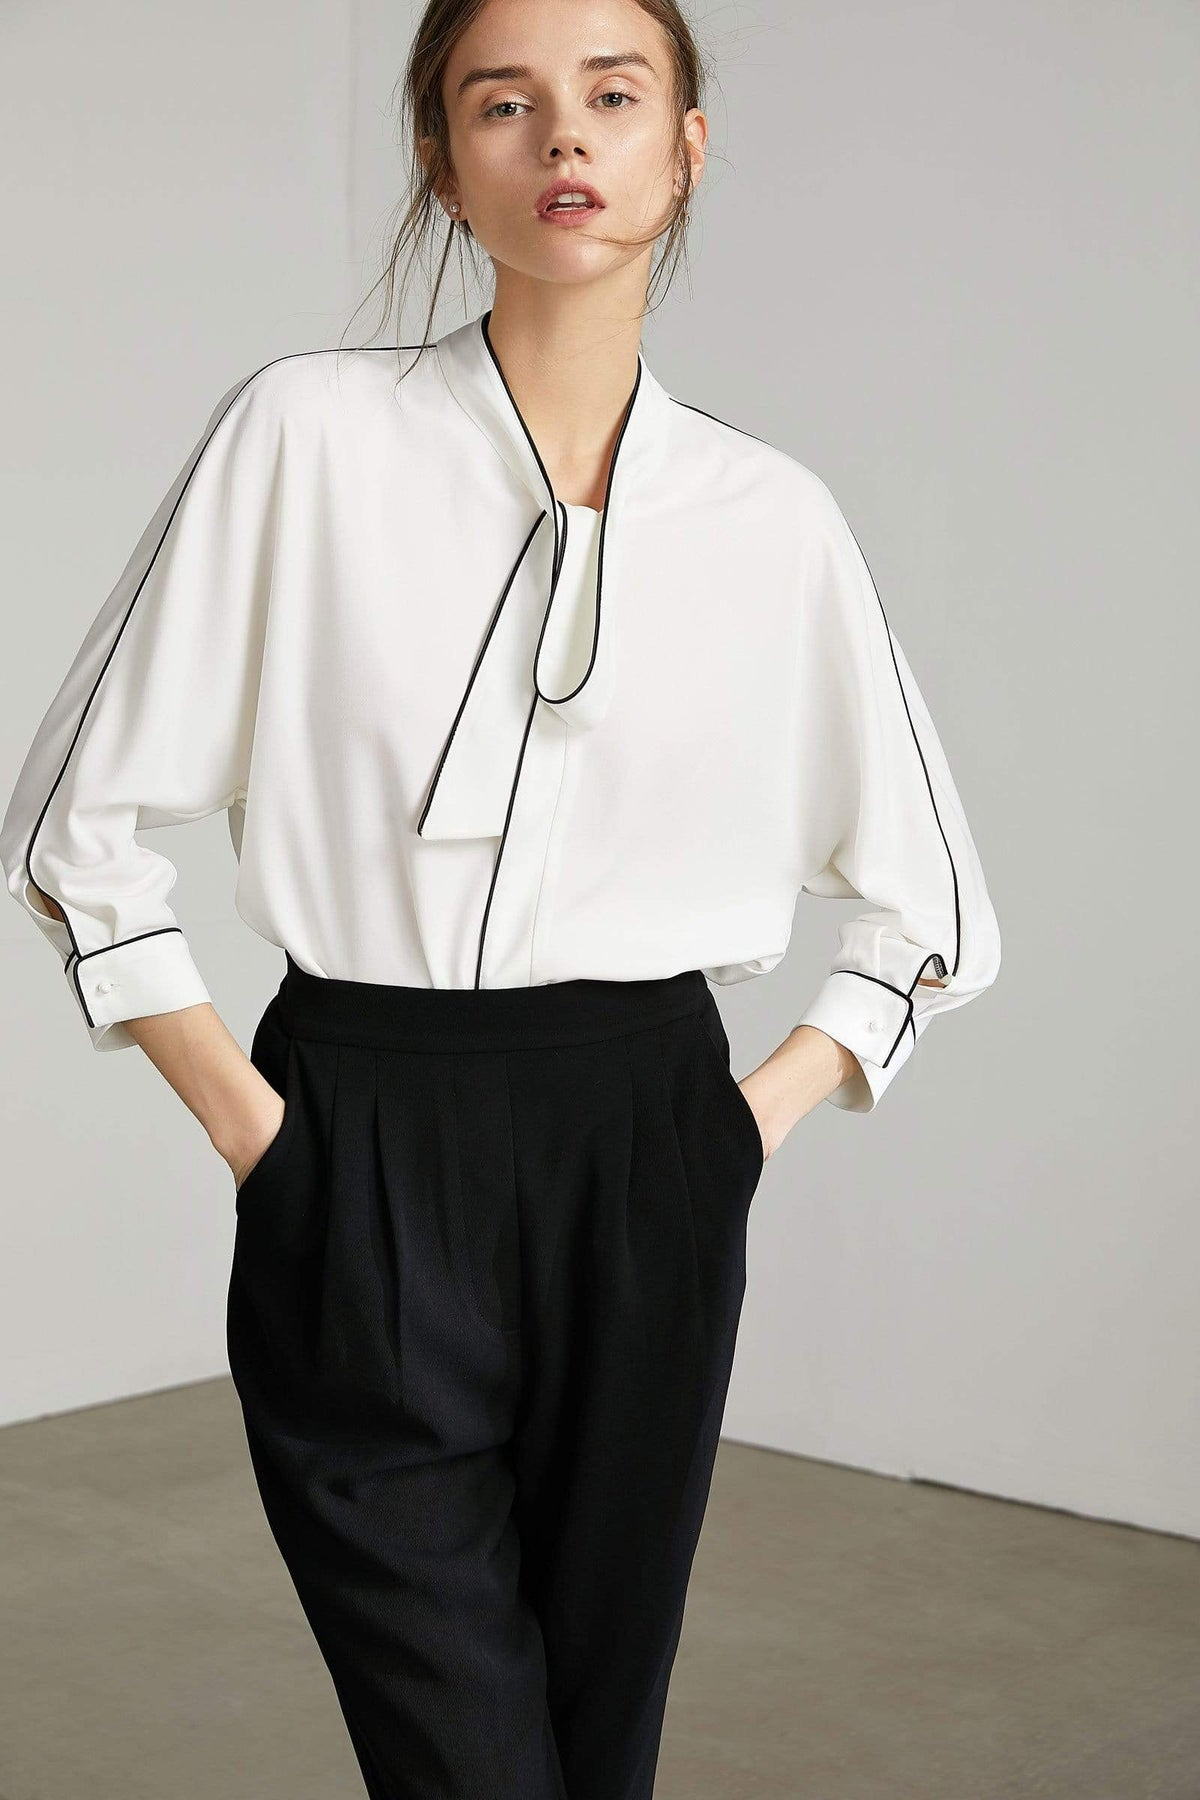 Chic white blouse with necktie and contrast stitch piping by J.ING